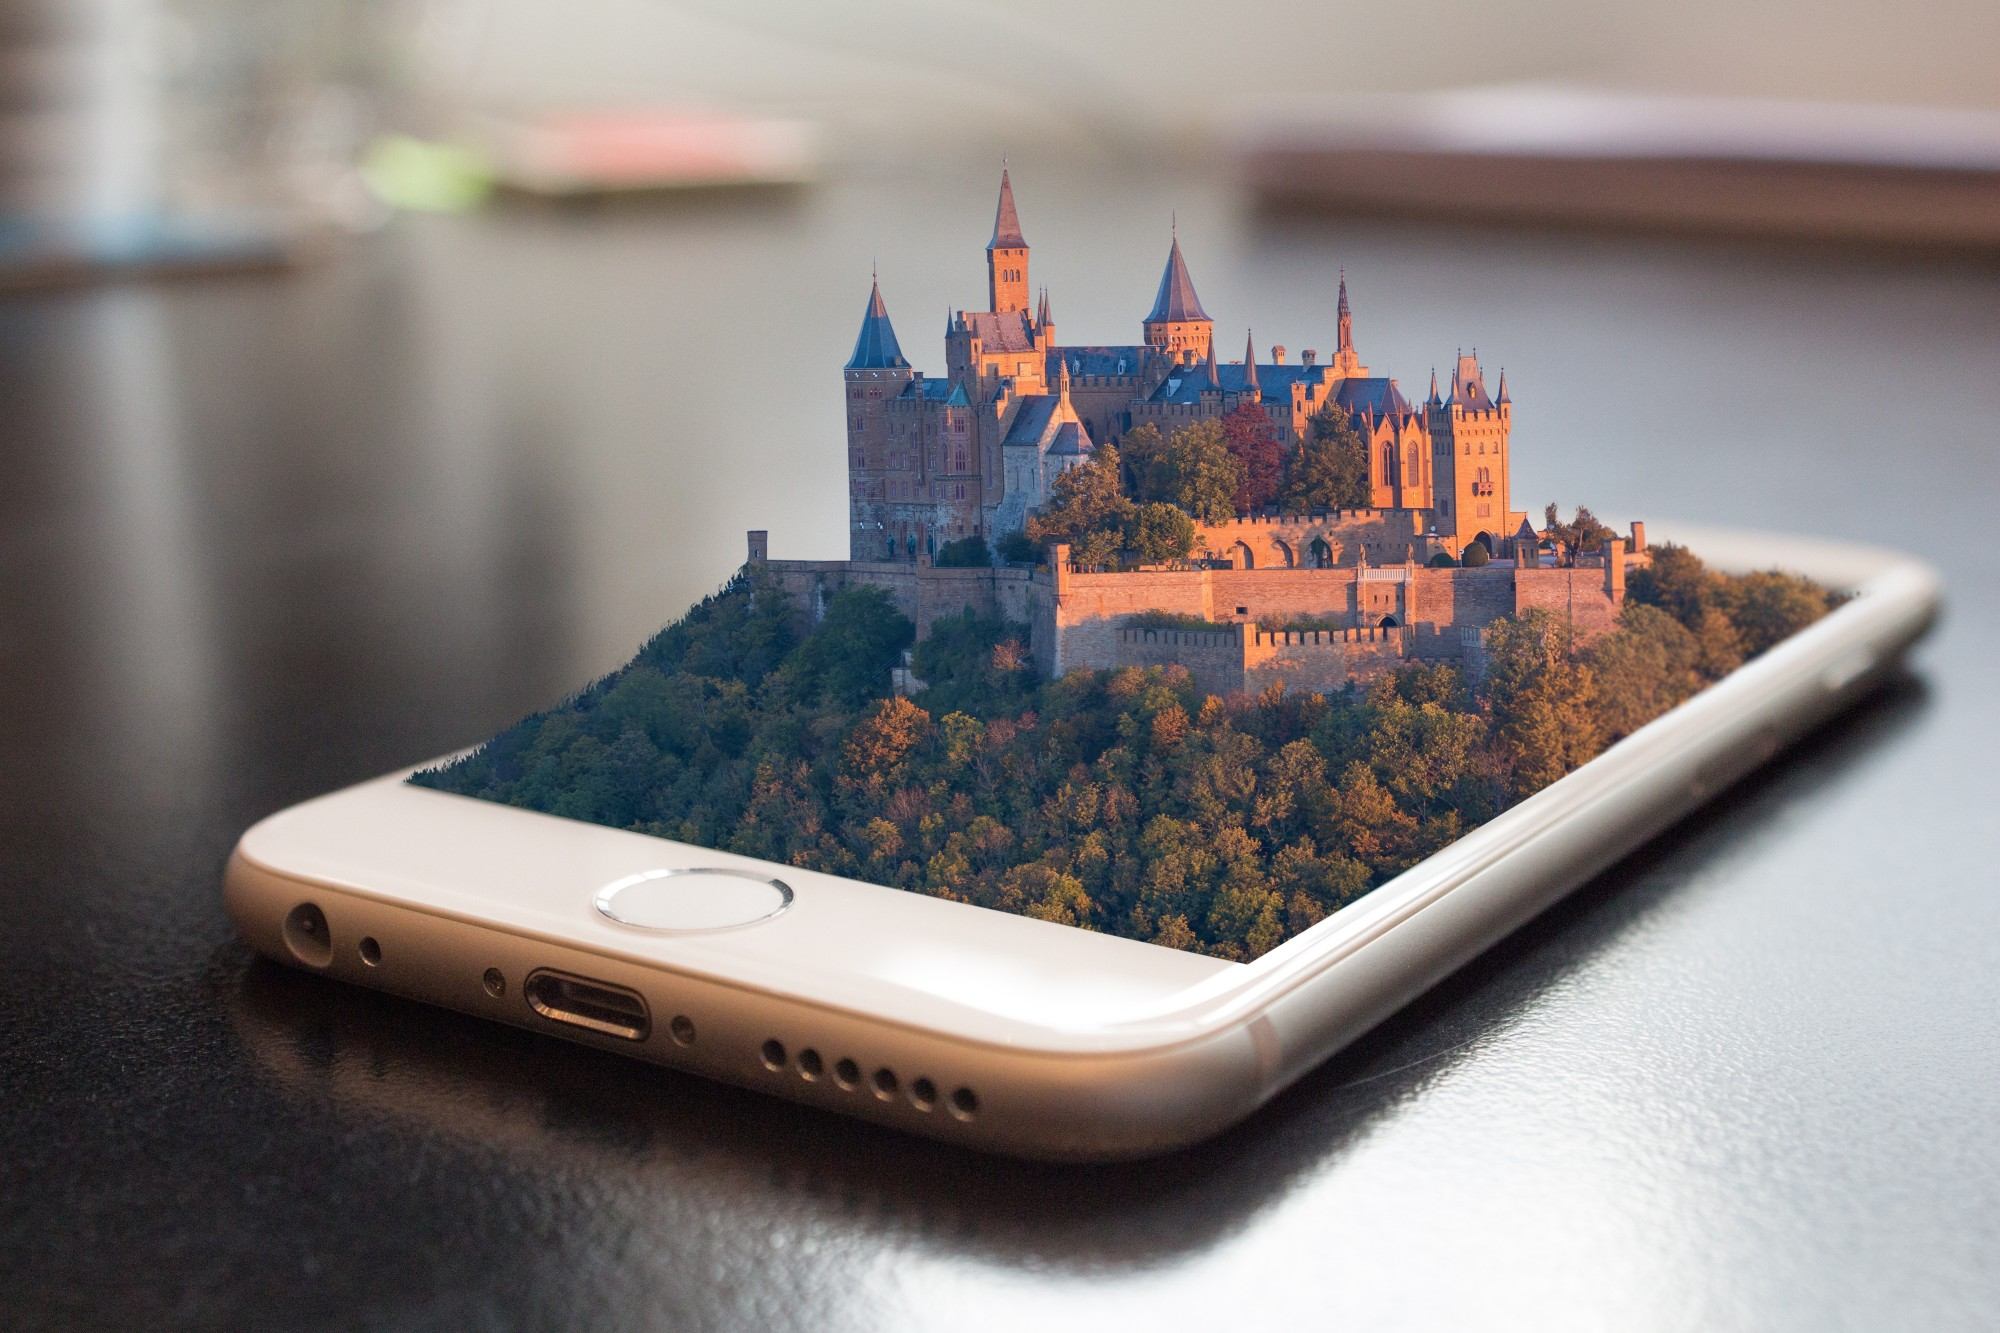 castle design on mobile phone